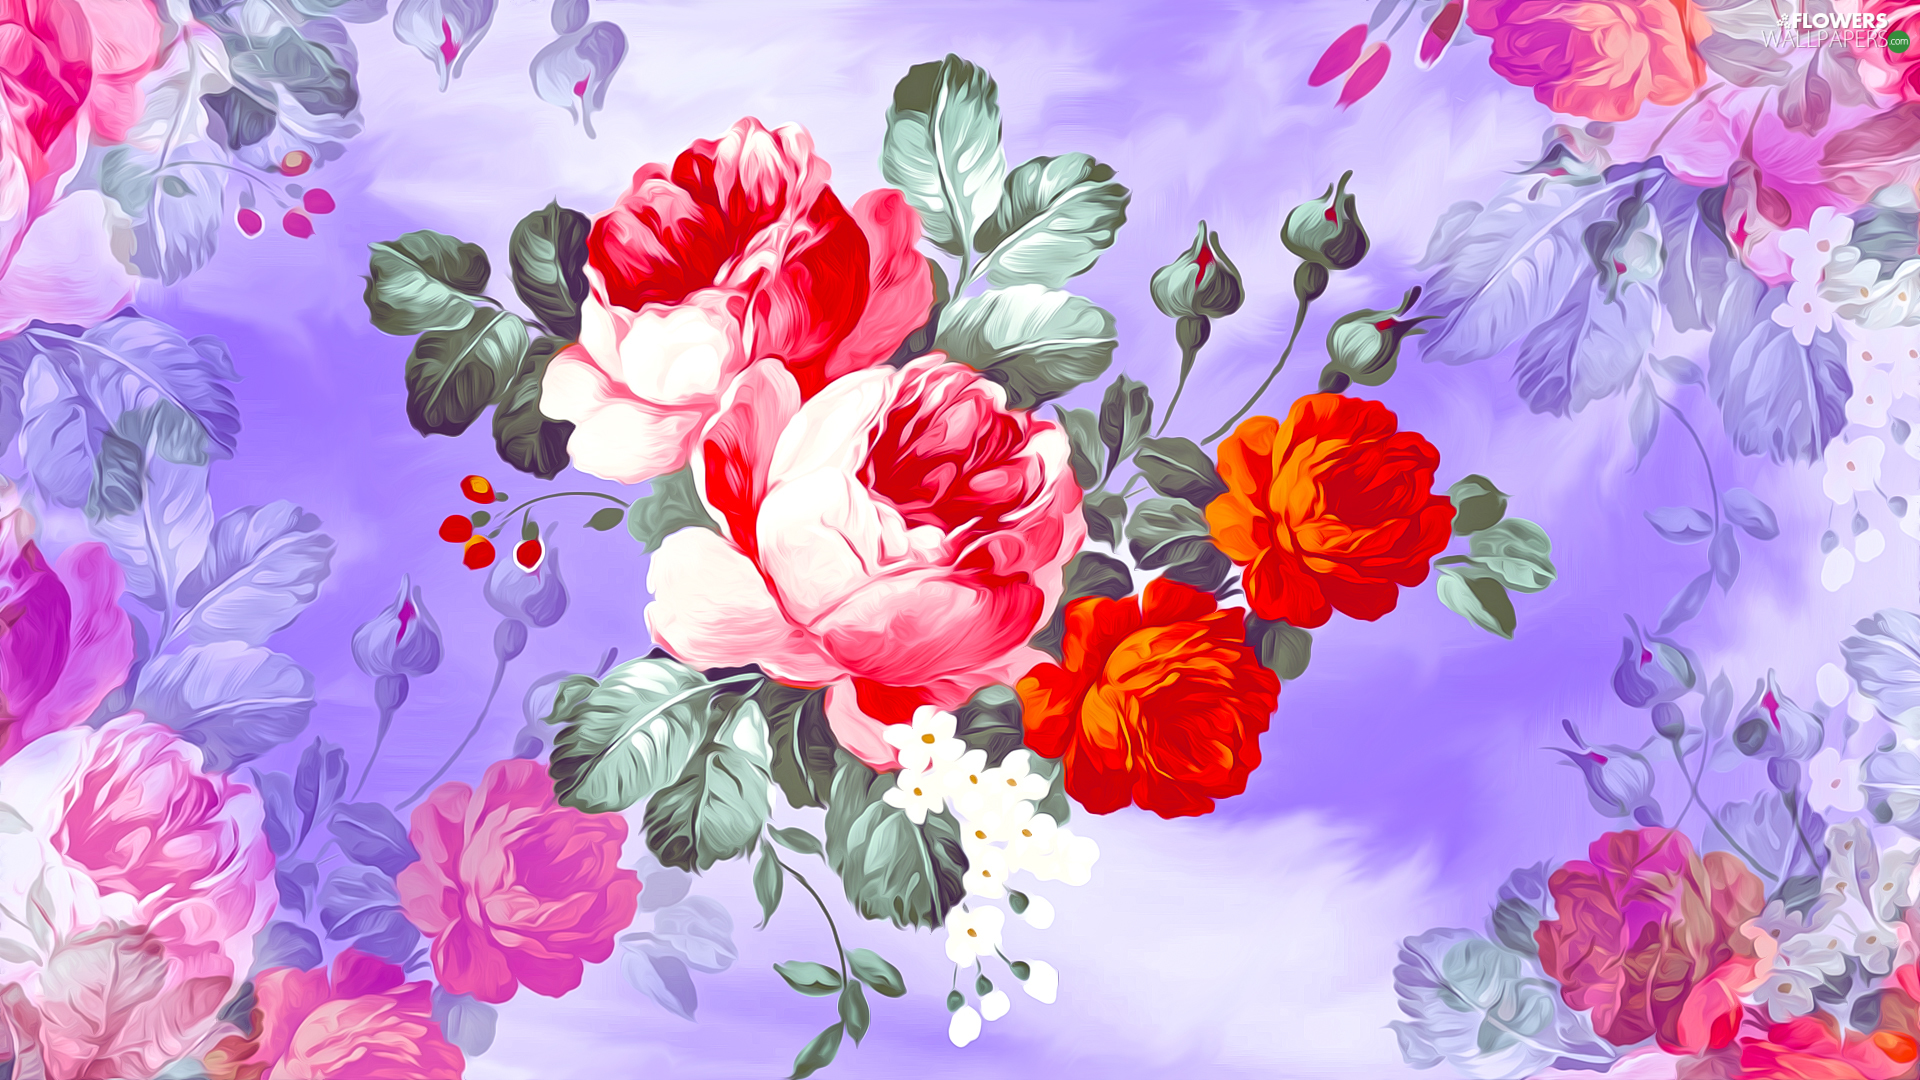 roses, graphics, Red, Pink, Flowers